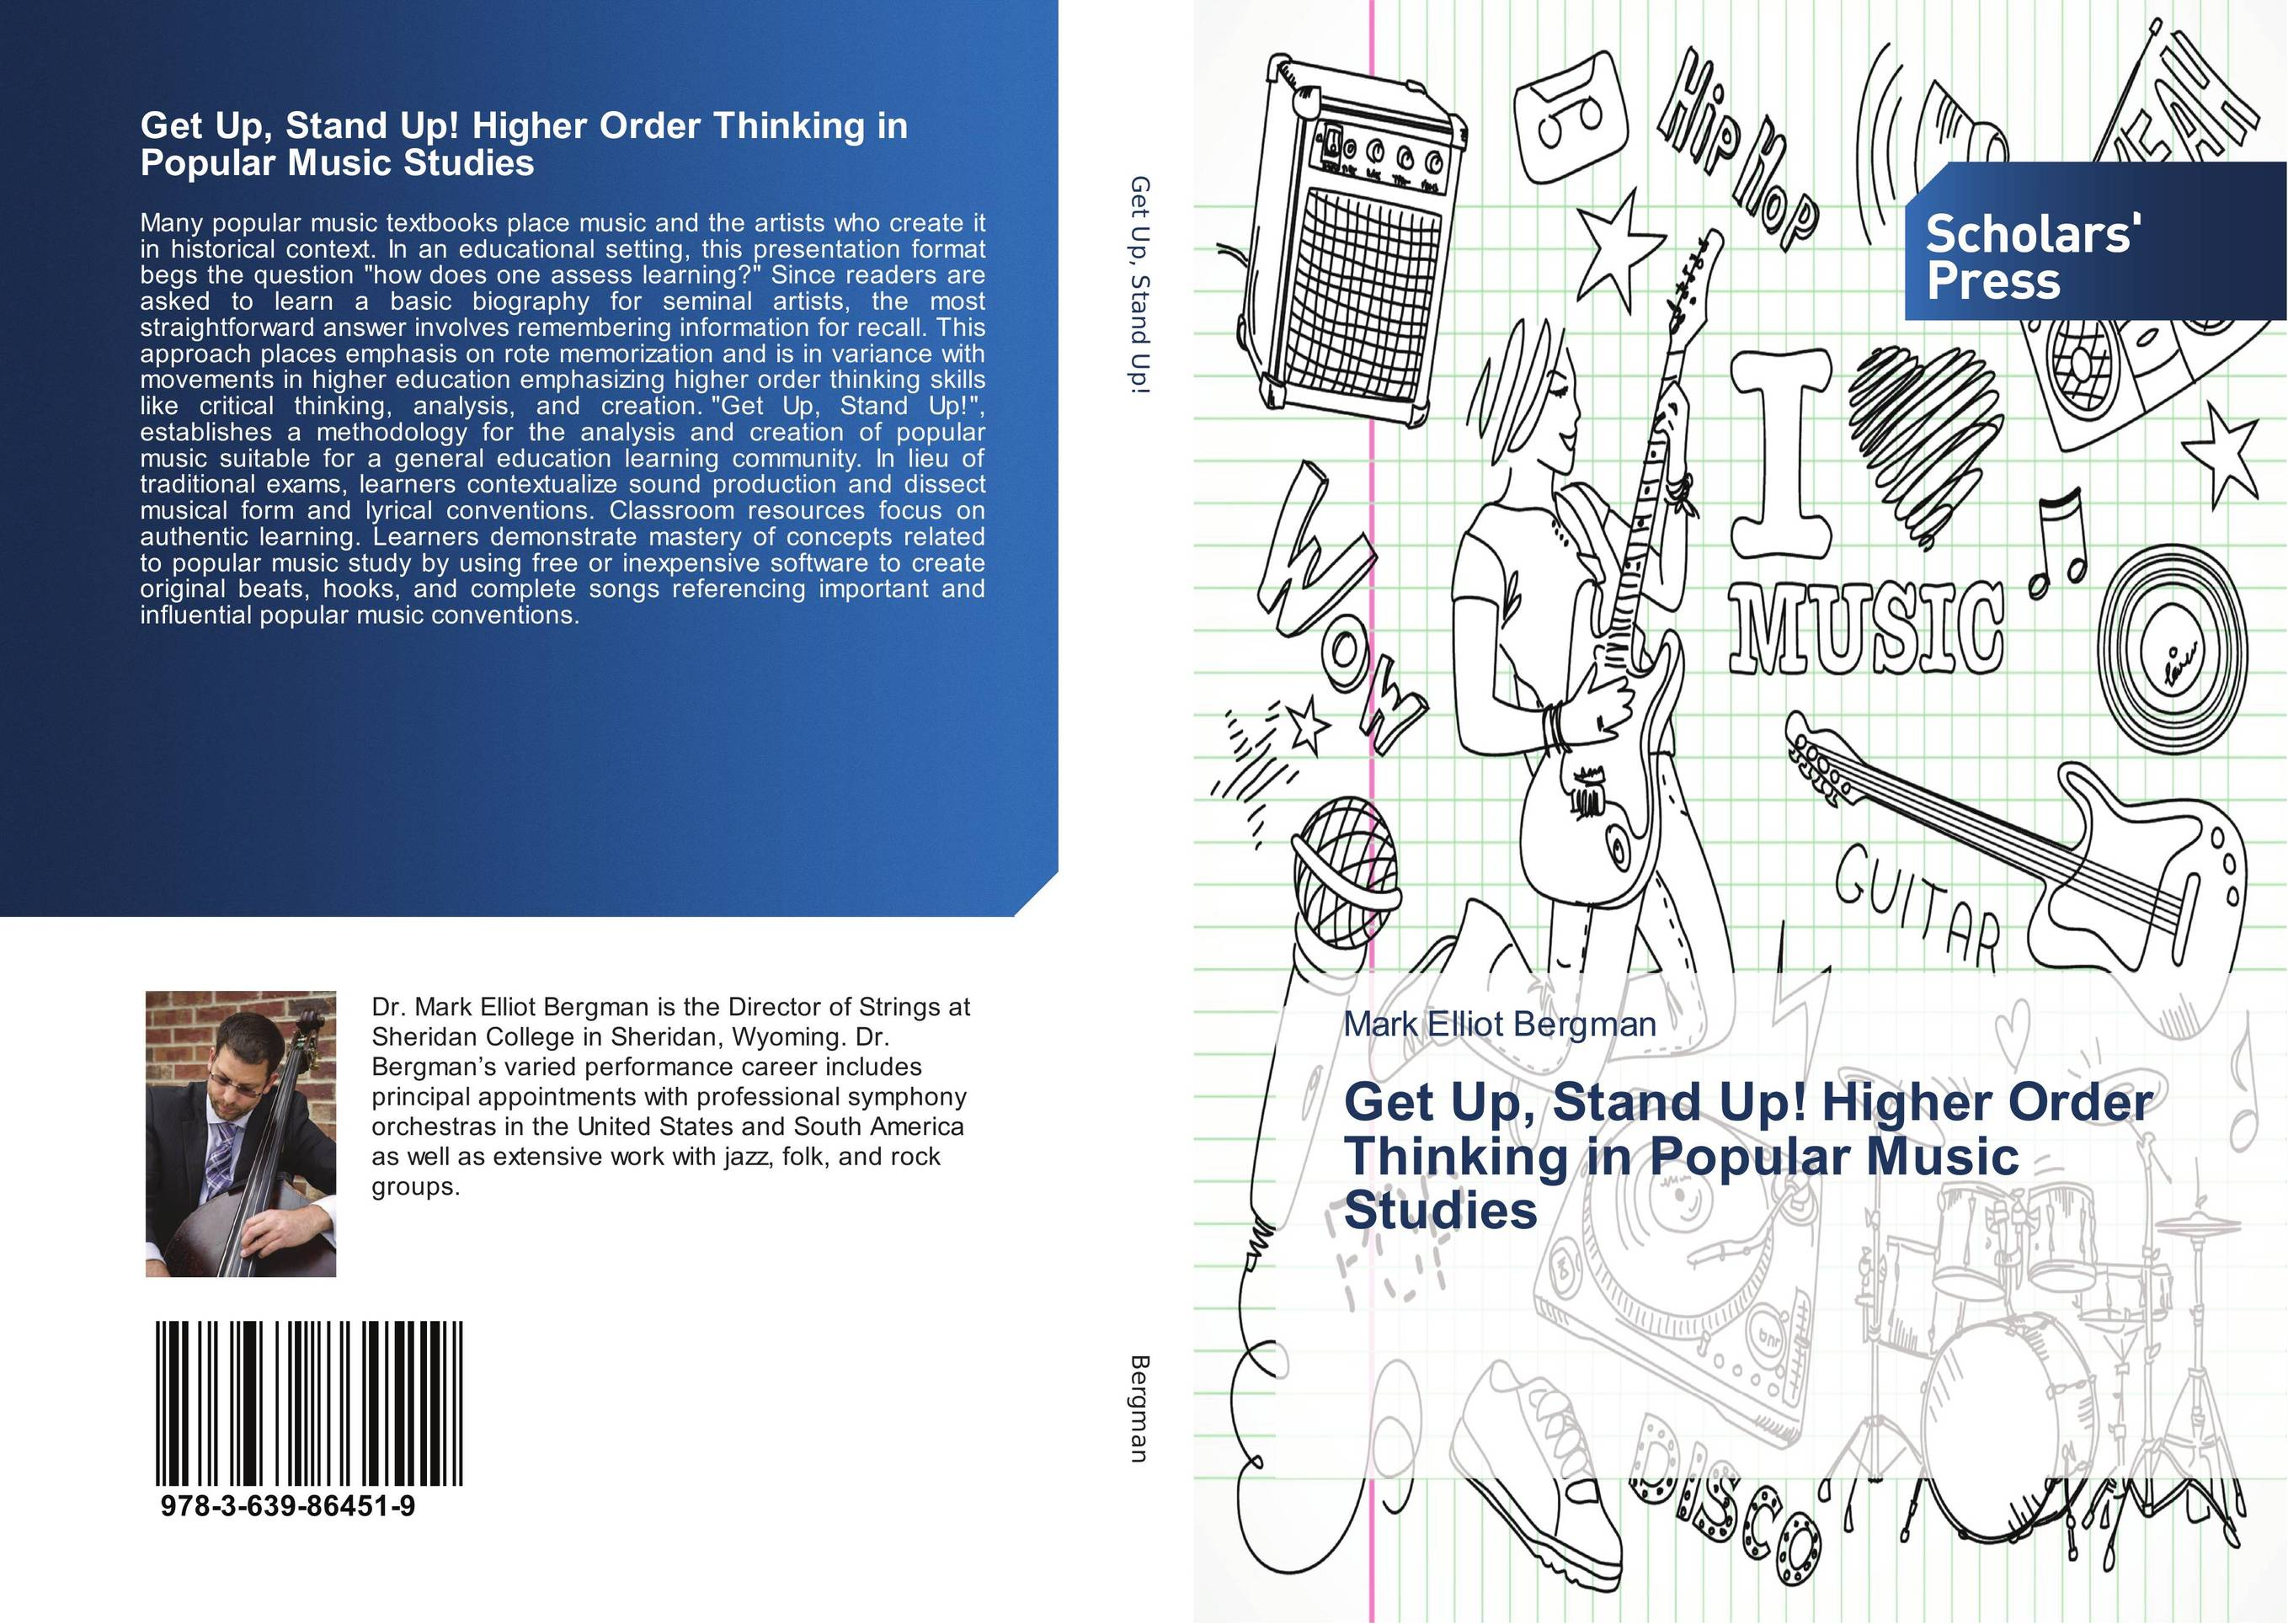 Get Up, Stand Up! Higher Order Thinking in Popular Music Studies